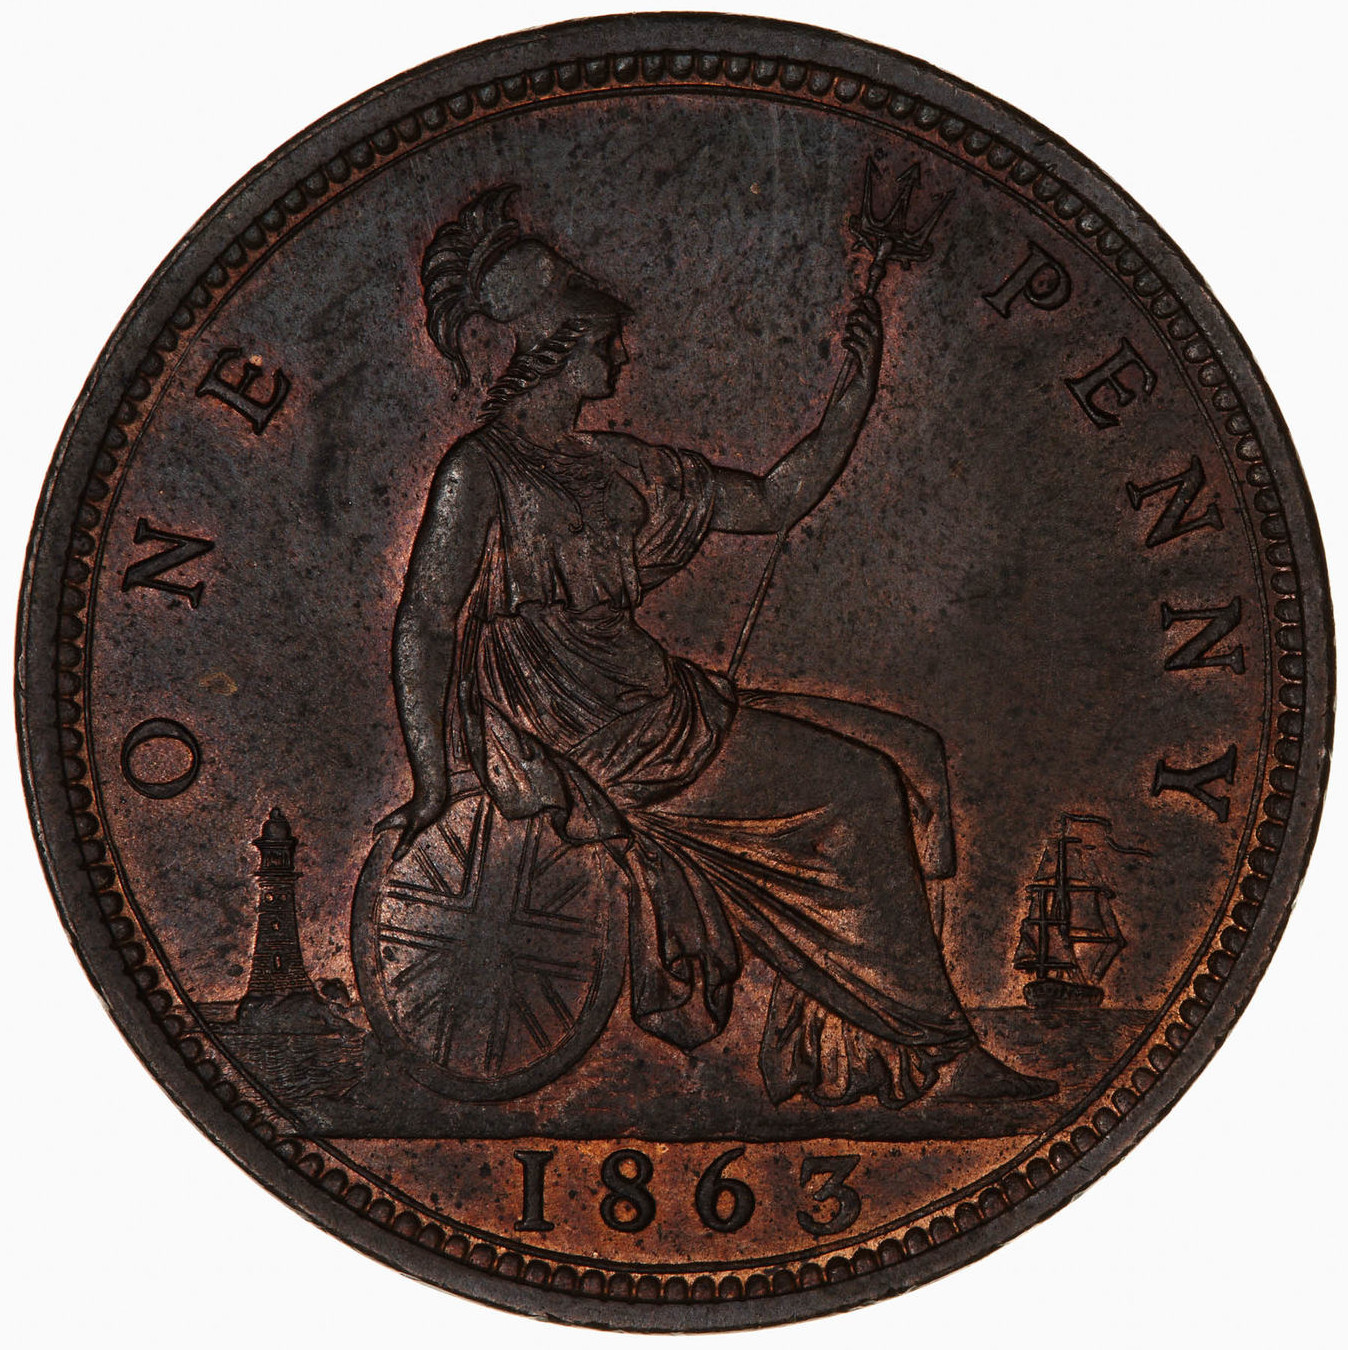 Penny (Pre-decimal): Photo Coin - Penny, Queen Victoria, Great Britain, 1863